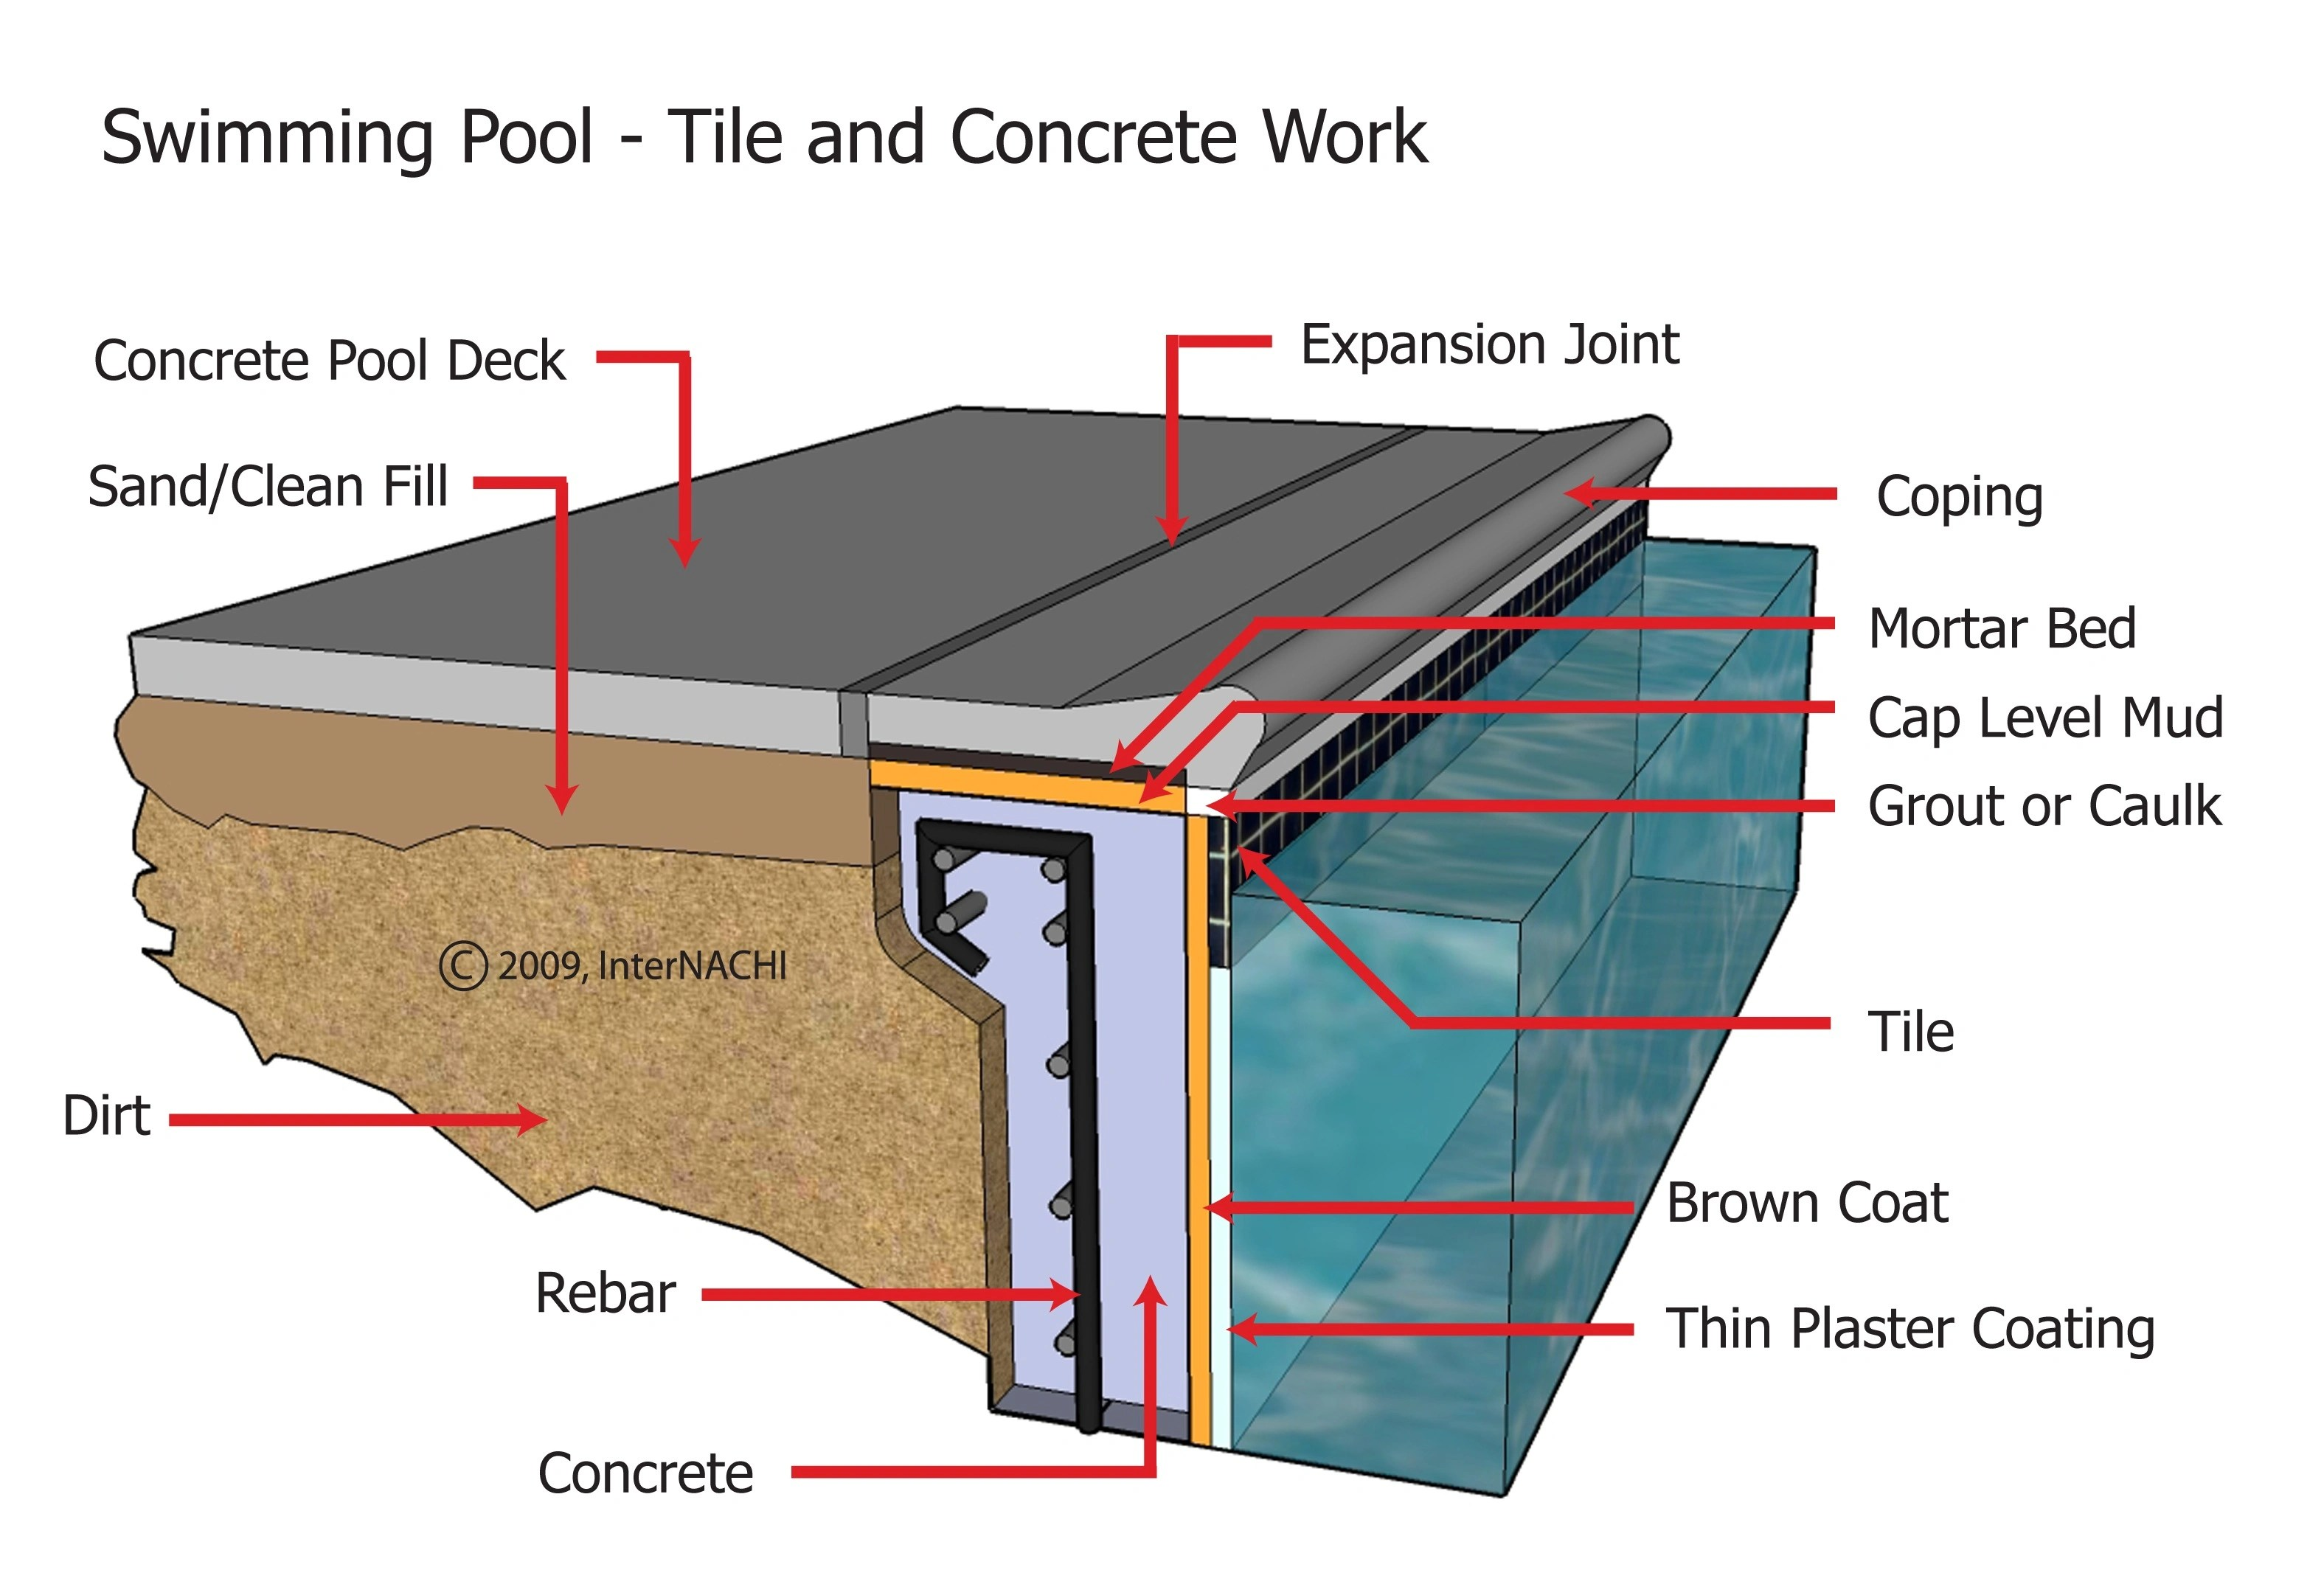 Jacuzzi Pool Top Caps Internachi Inspection Graphics Library Swimming Pools